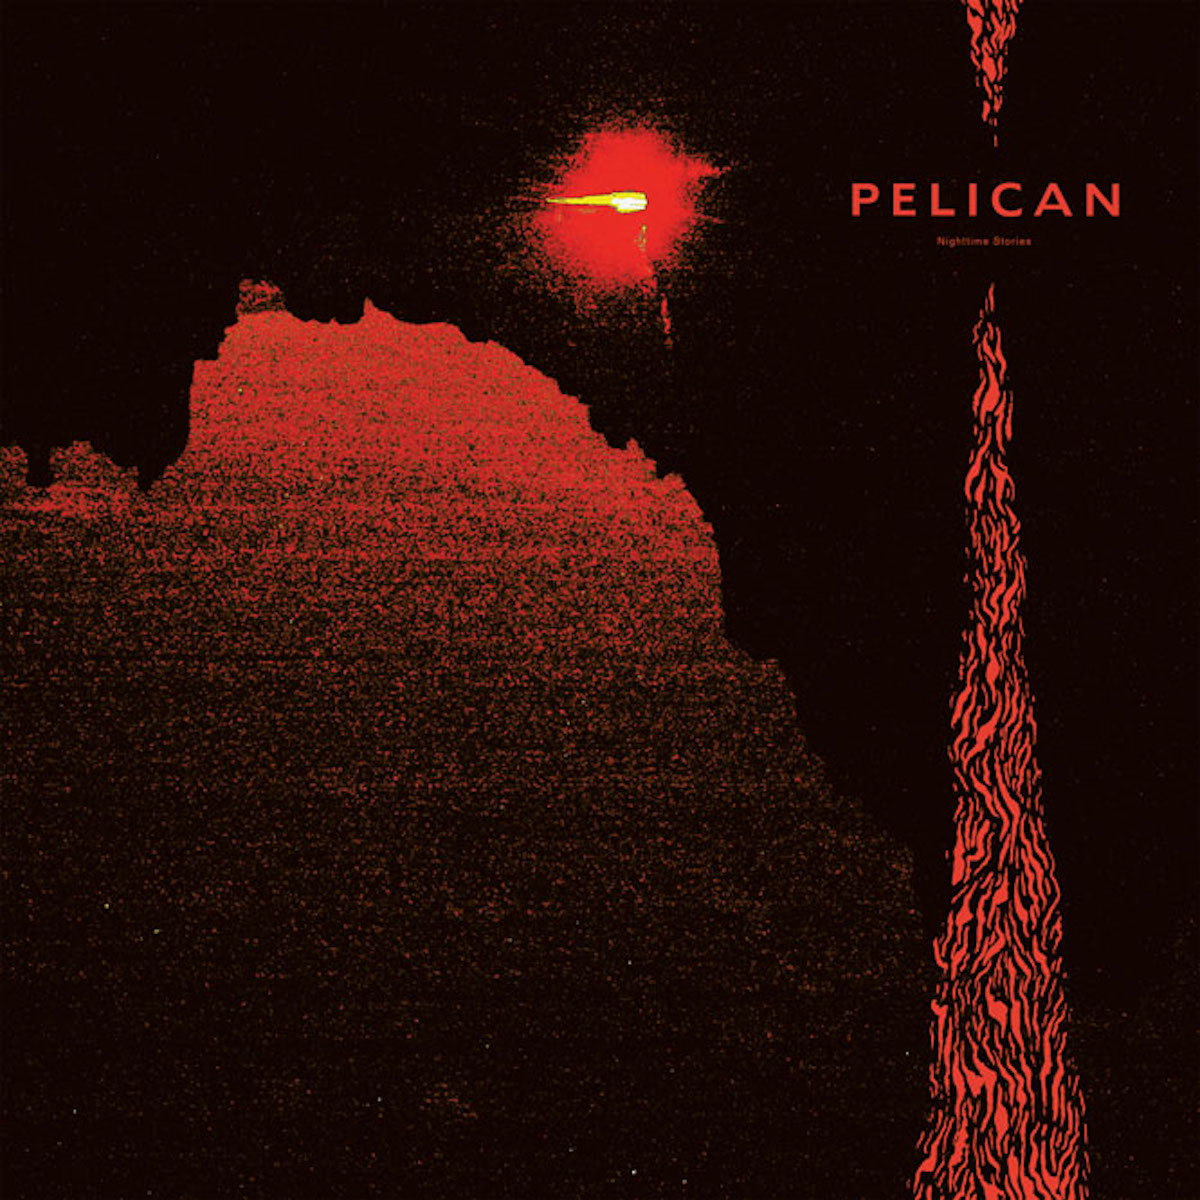 Image result for pelican nighttime stories